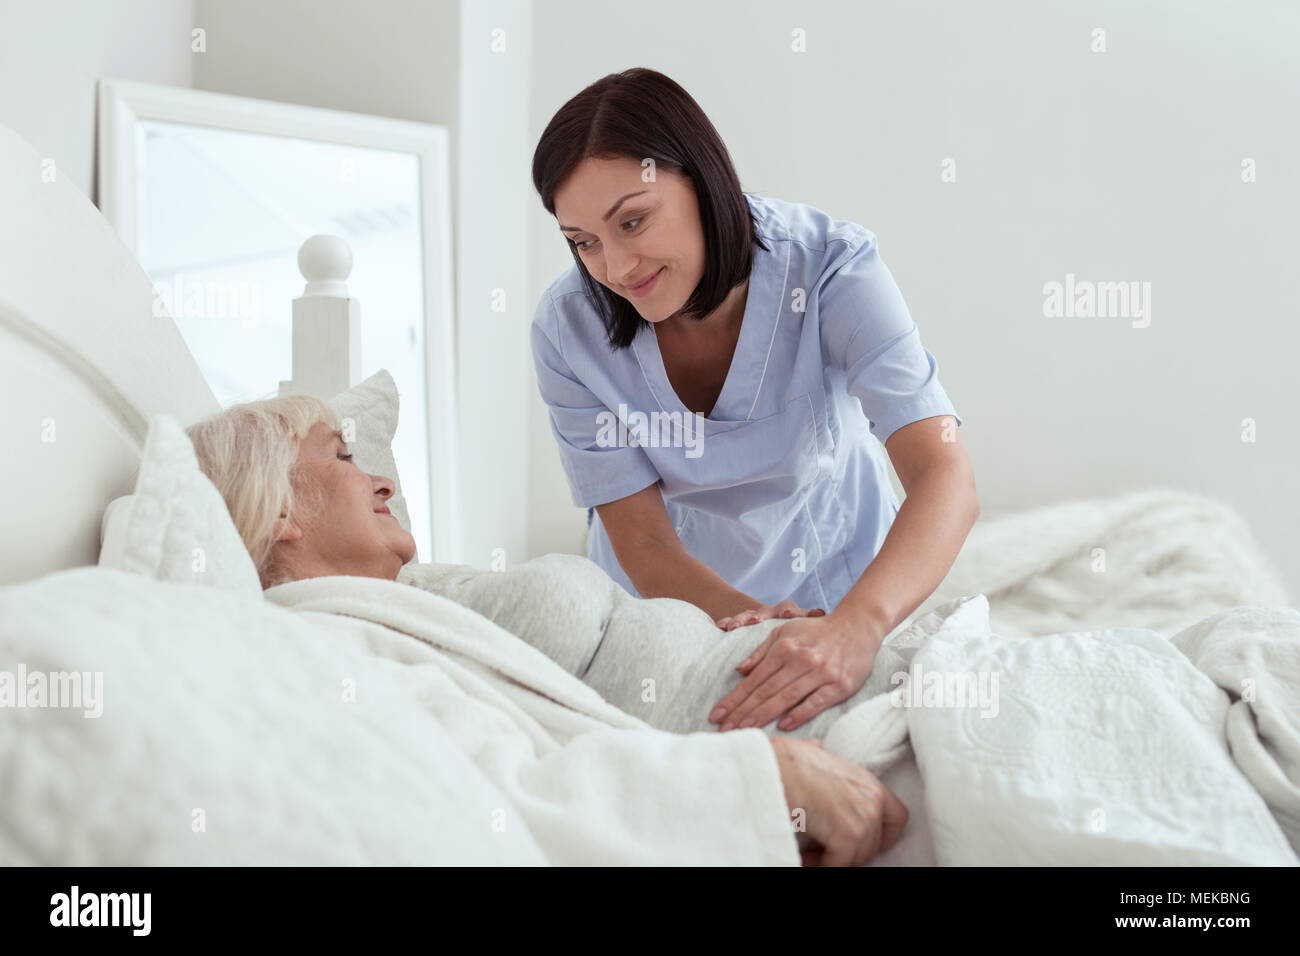 Appealing glad nurse setting pain area - Stock Image